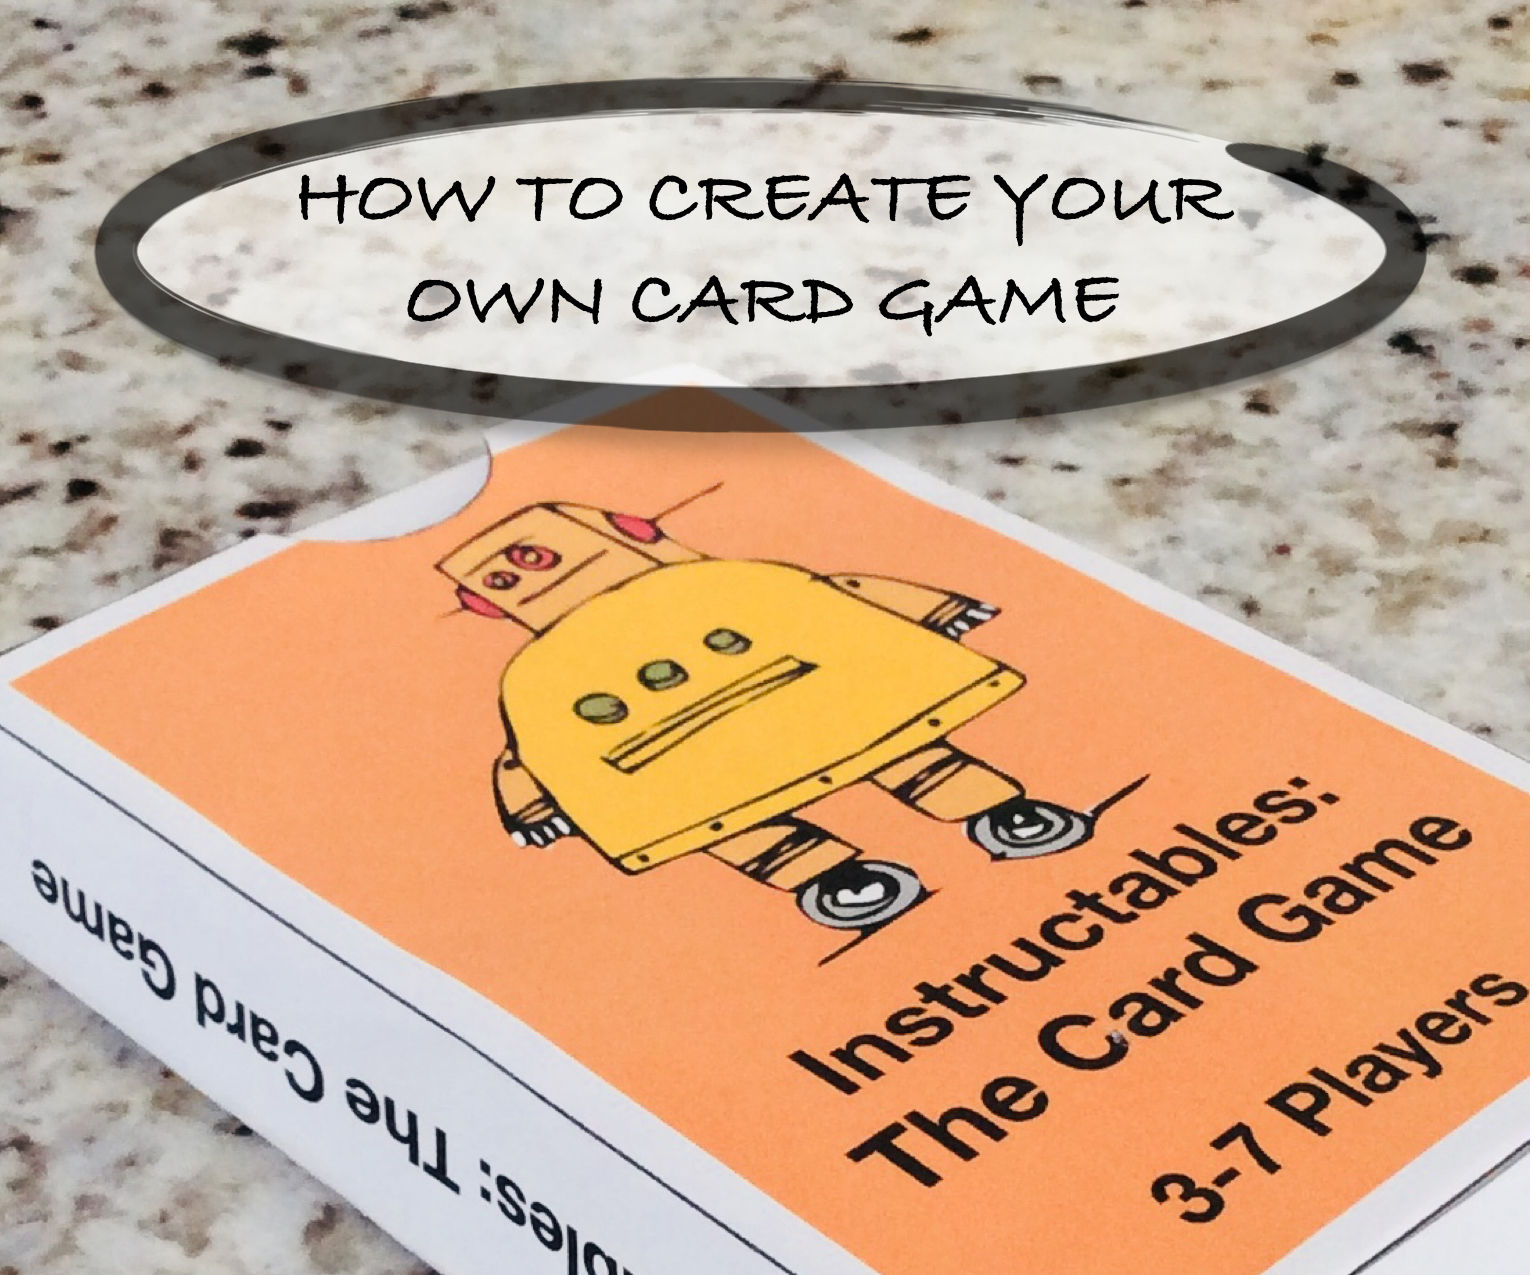 How to Make Your Own Card Game